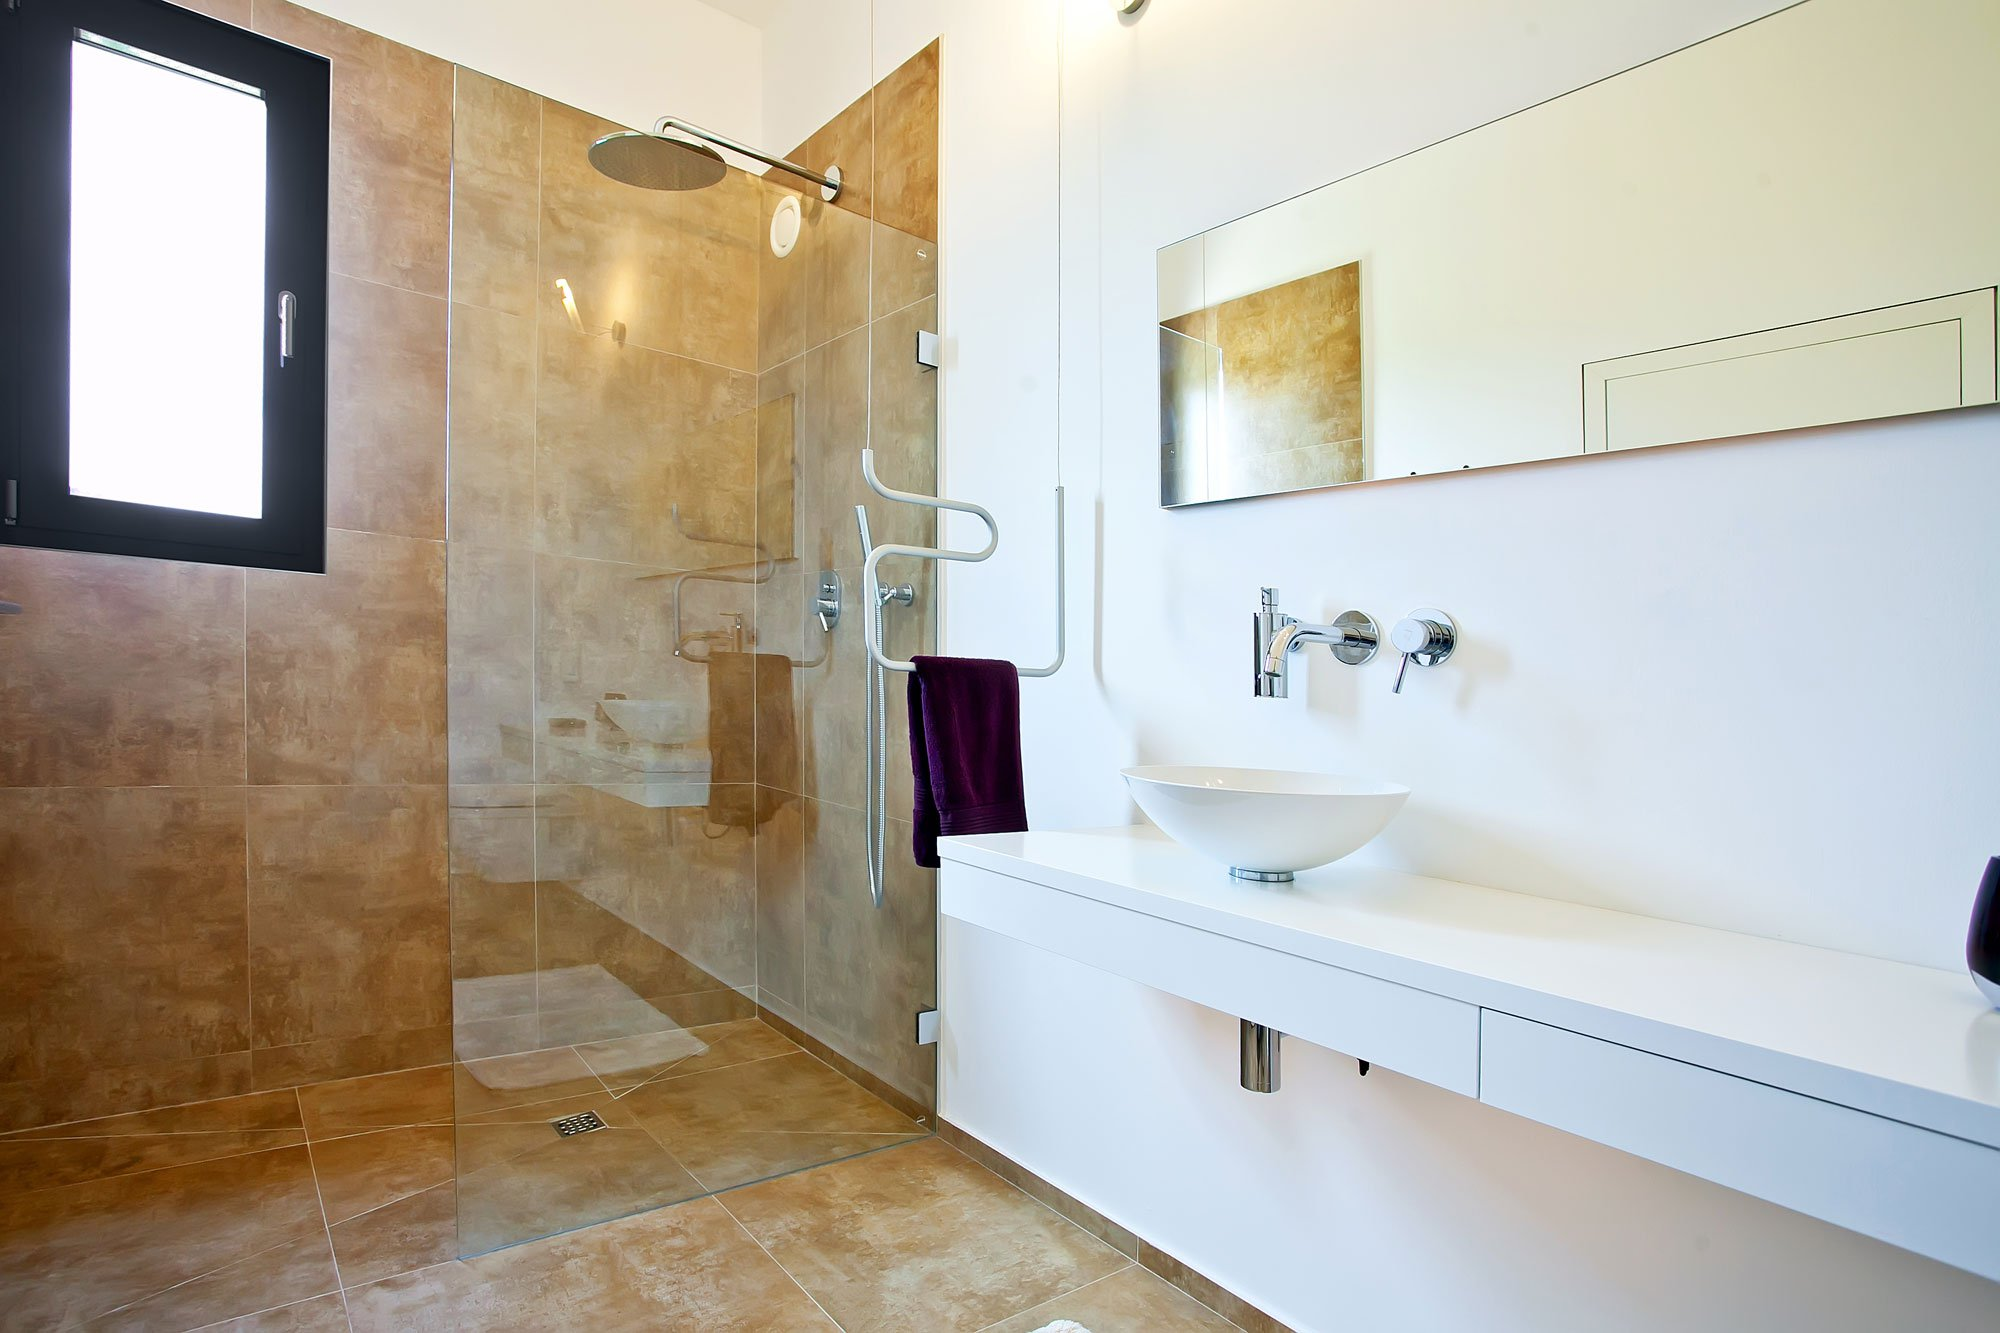 A-Holiday-Home-in-Mallorca-20